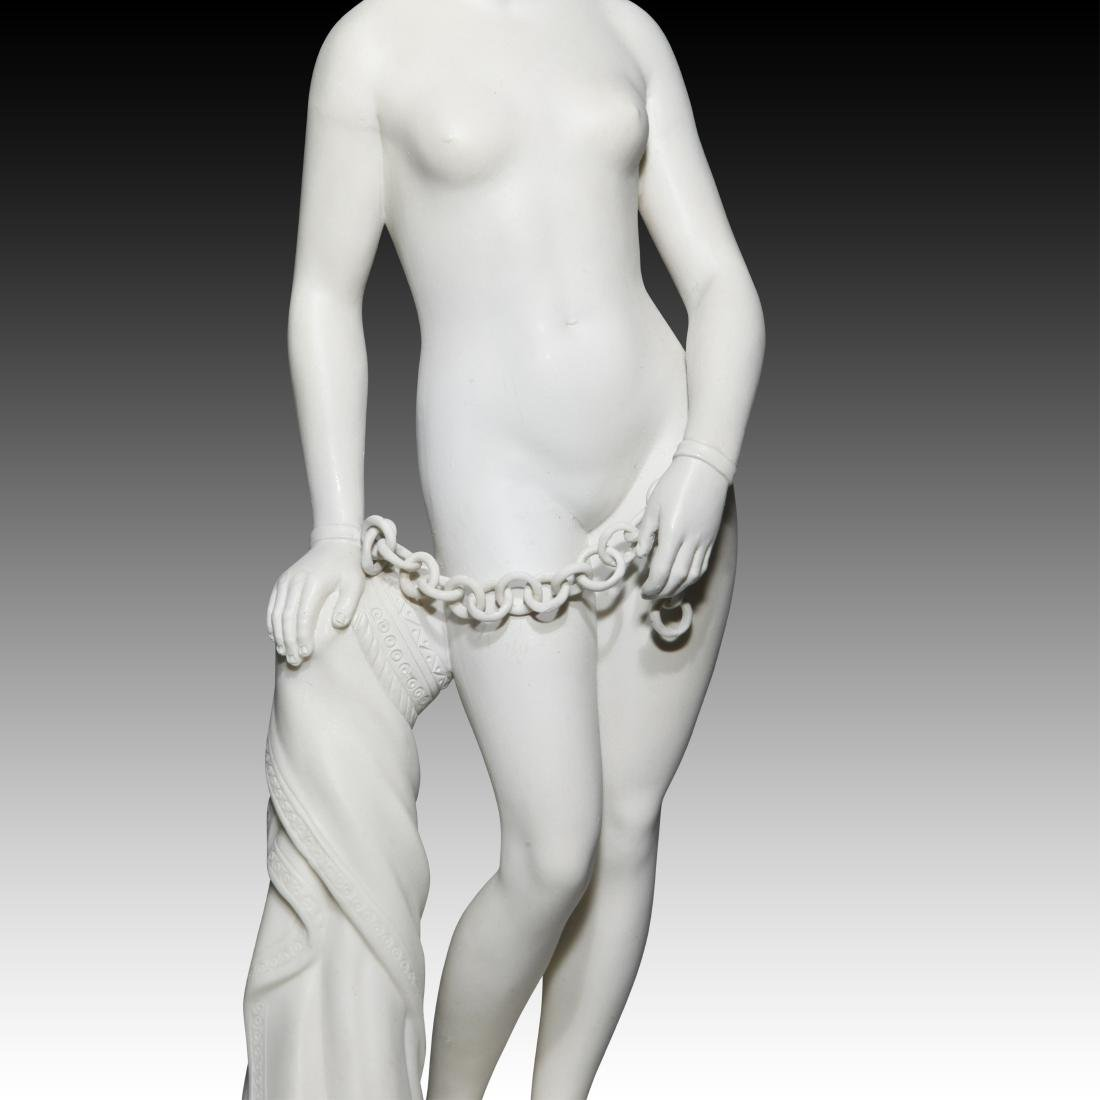 Greek Slave Girl in Chains for Auction Figurine - 5